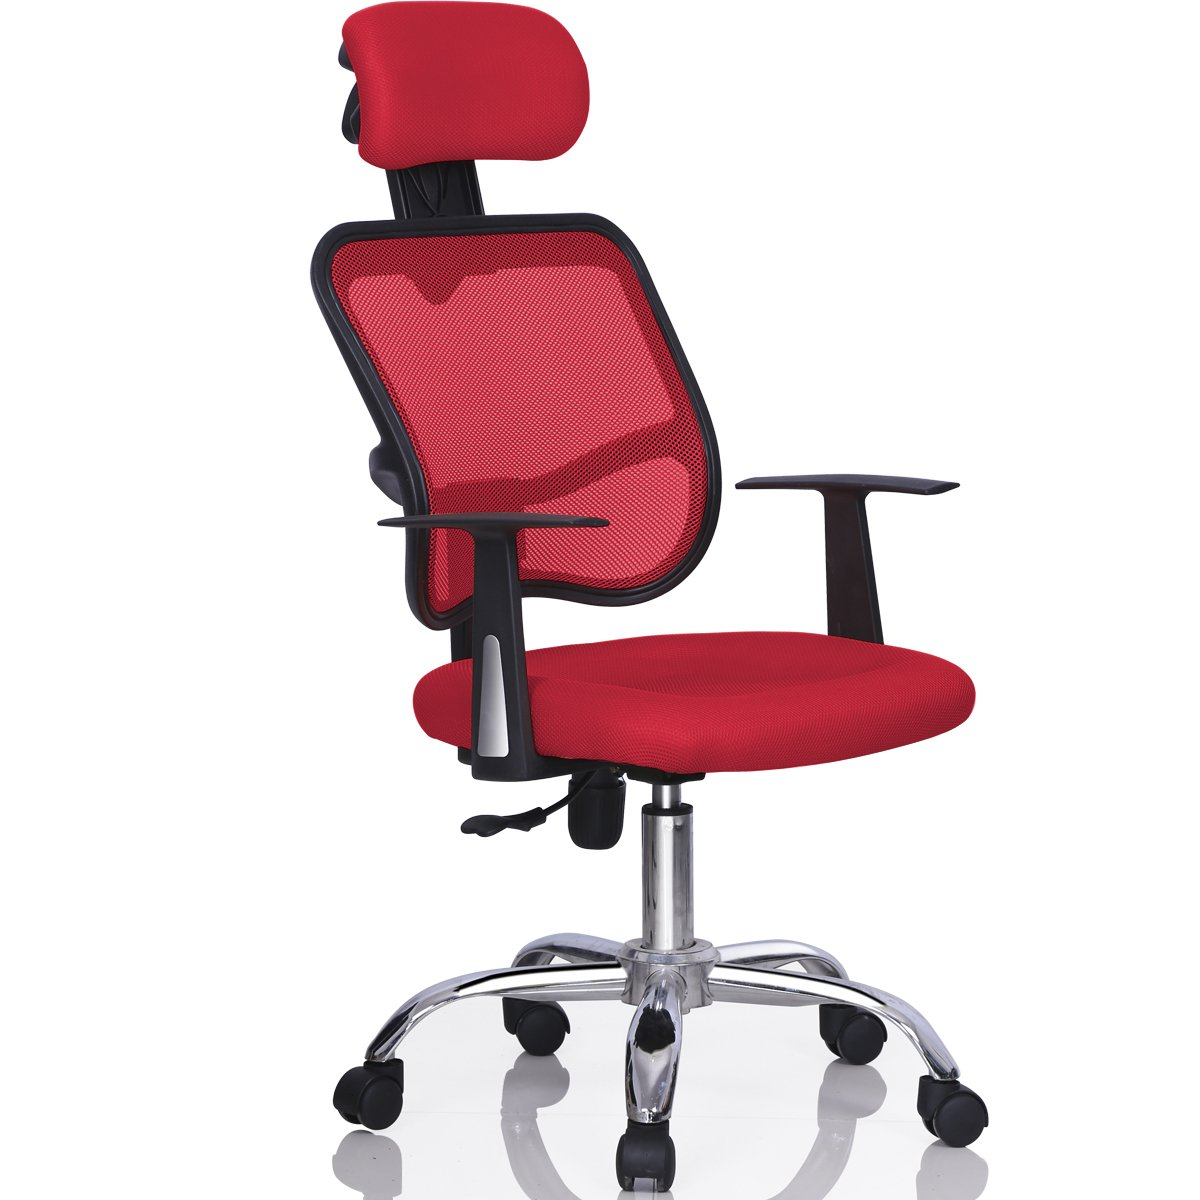 racing car and uk amazon style furniture desk red swivel seat armrests black leather dp faux with cherry high office adjustable recline co chair tree back